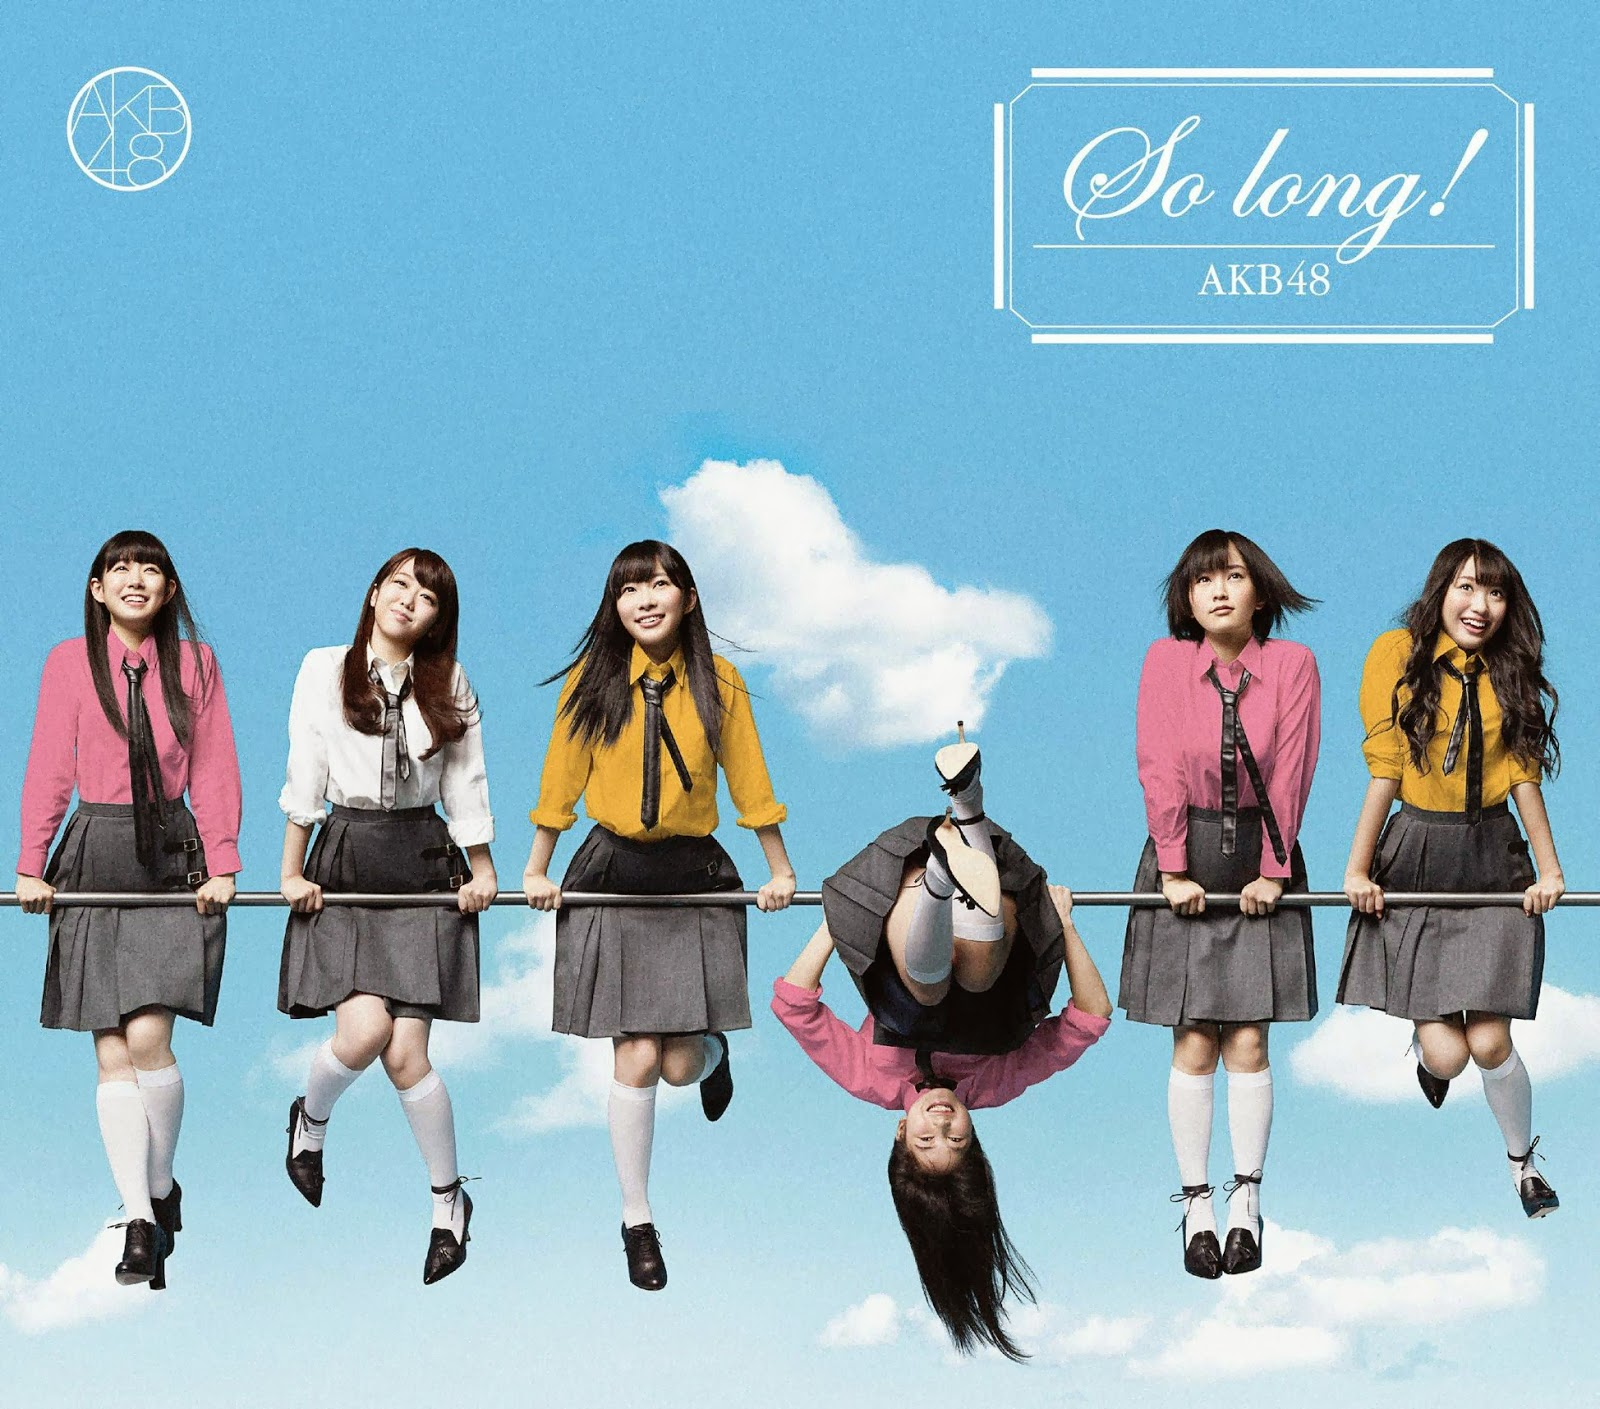 akb48_So_long_typeb_limited.jpg (1600×1409)